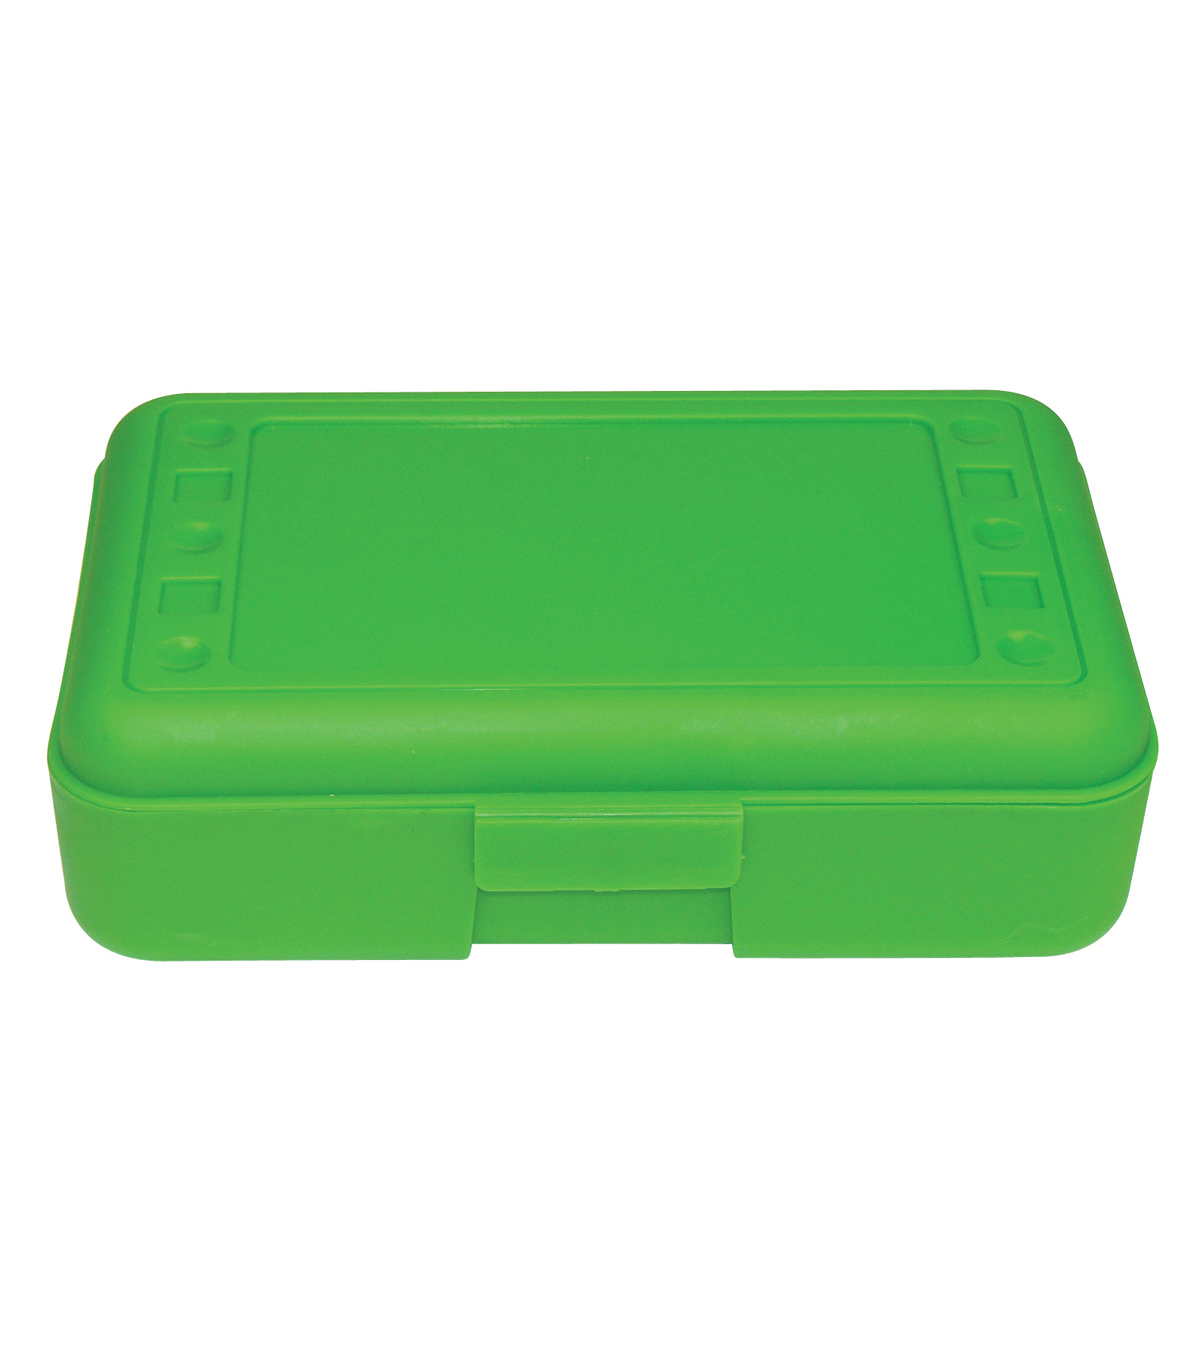 Romanoff Products Pencil Box, Pack of 12